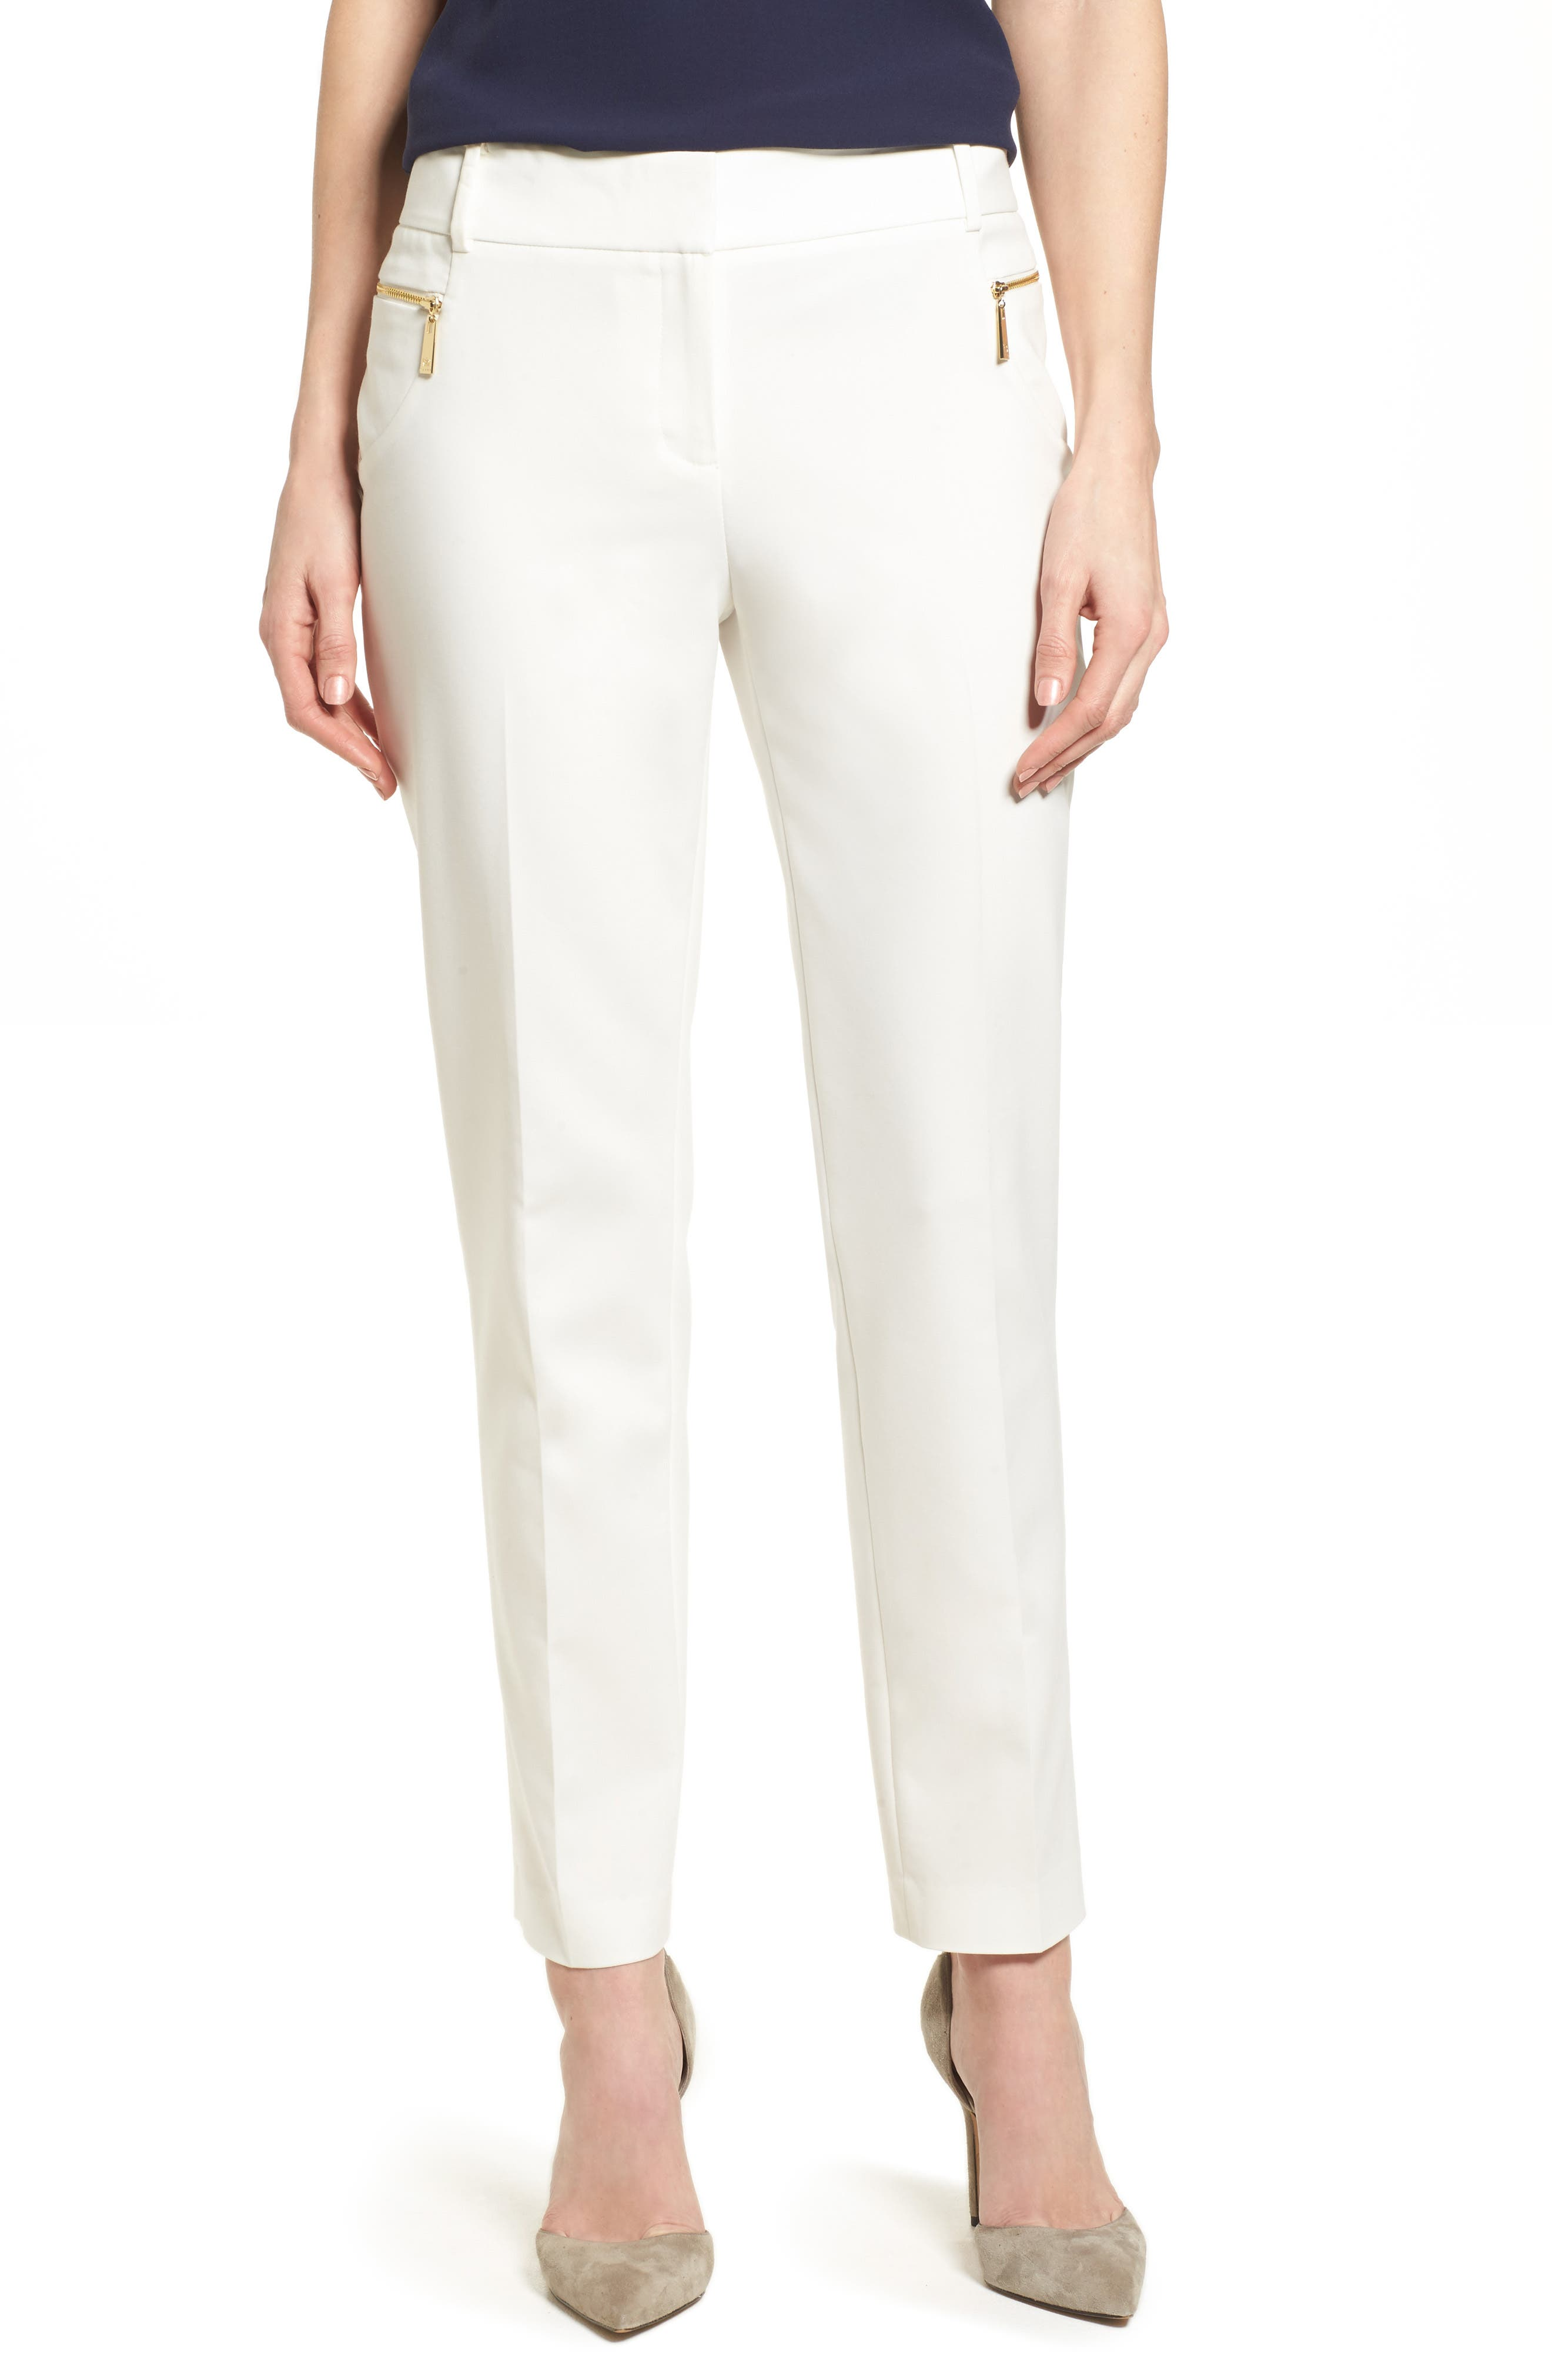 Alternate Image 1 Selected - Chaus Dena Zip Pocket Ankle Pants